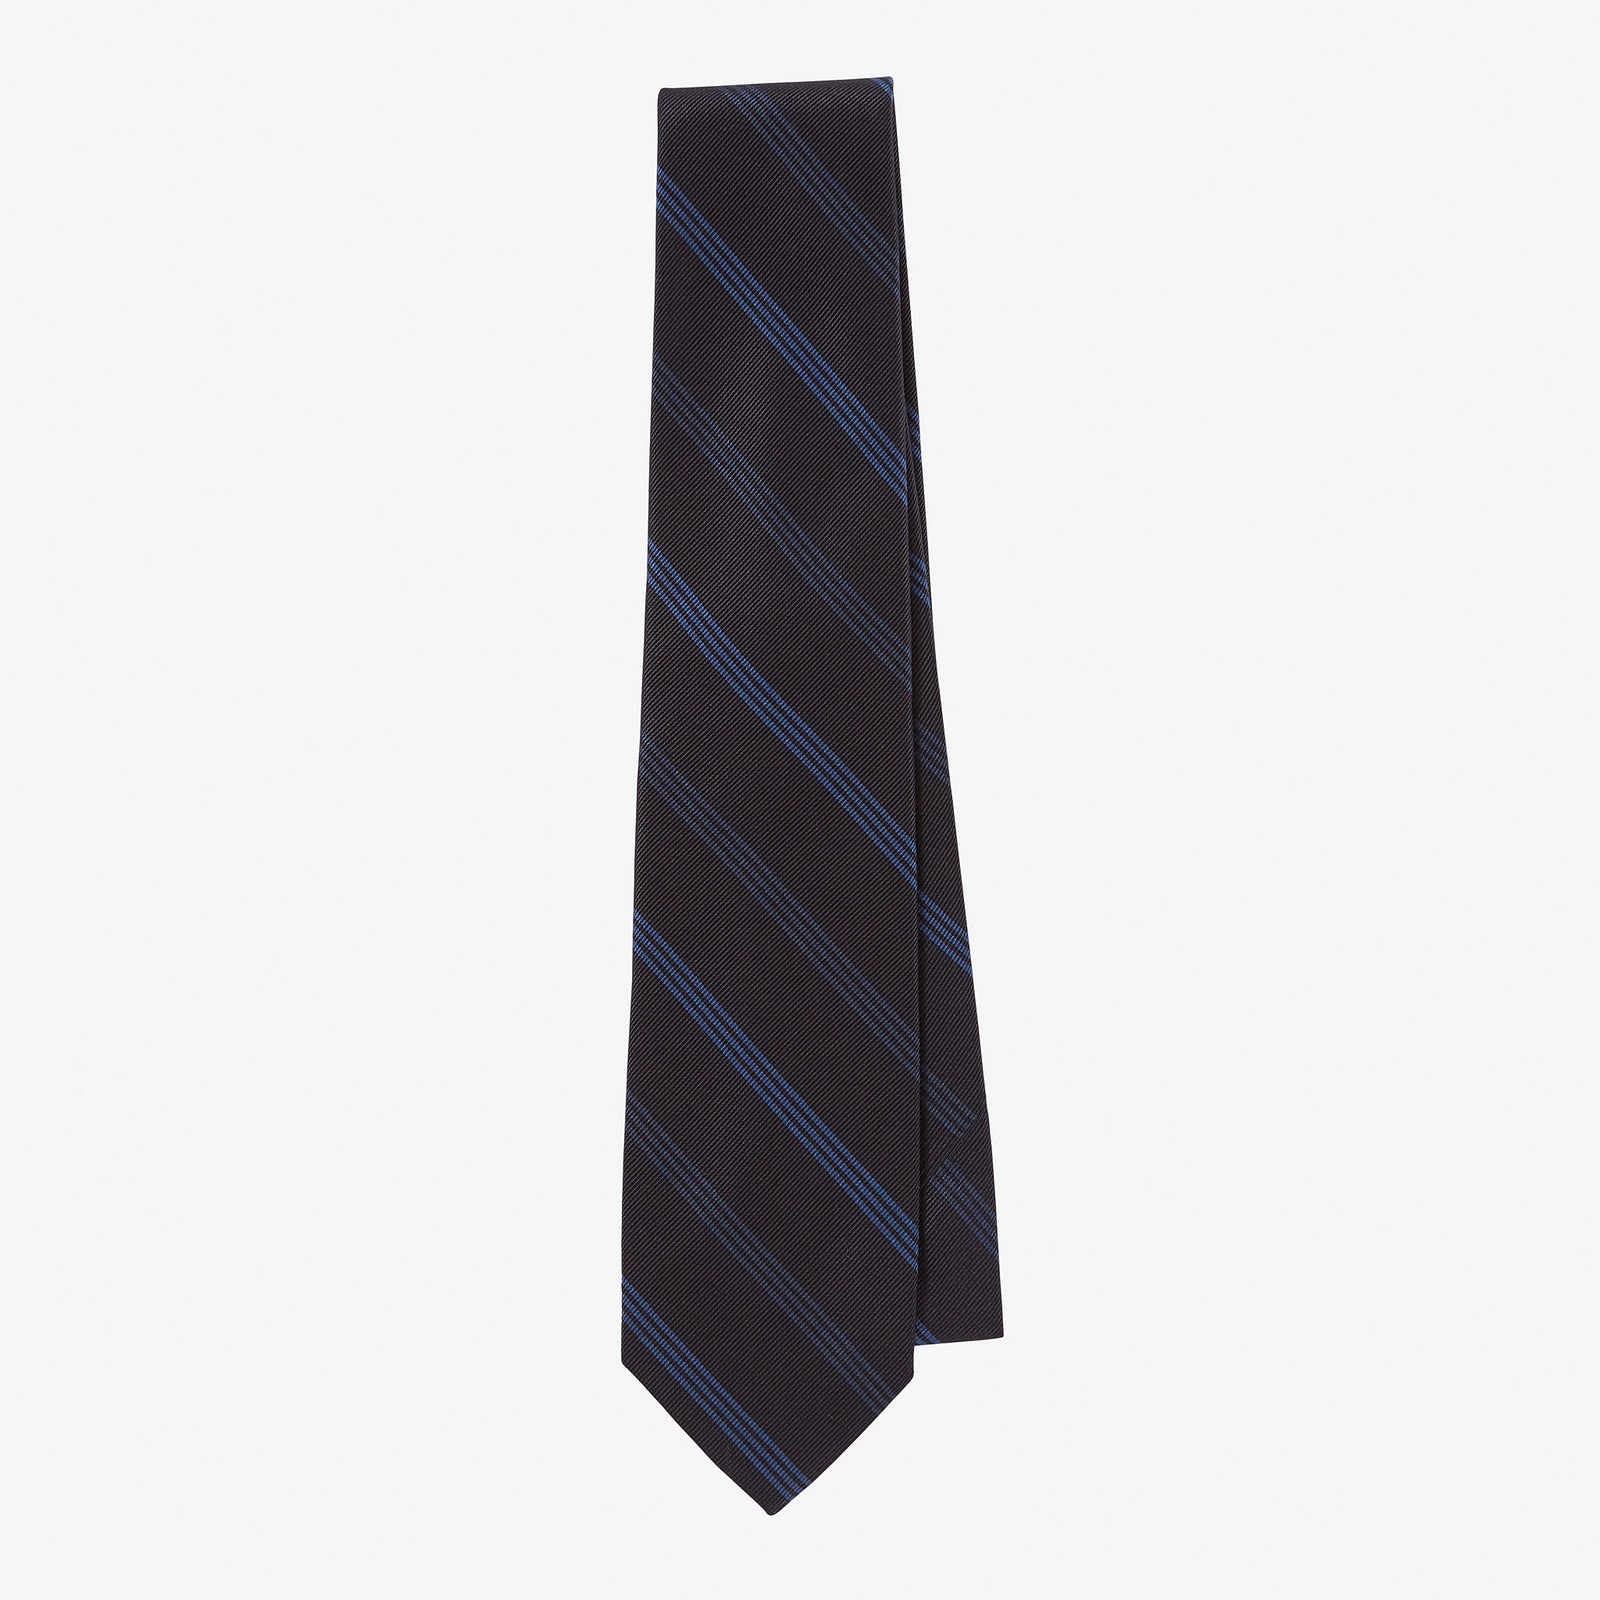 Silk Tie Overdye Navy Cobalt Blue Multi Stripe